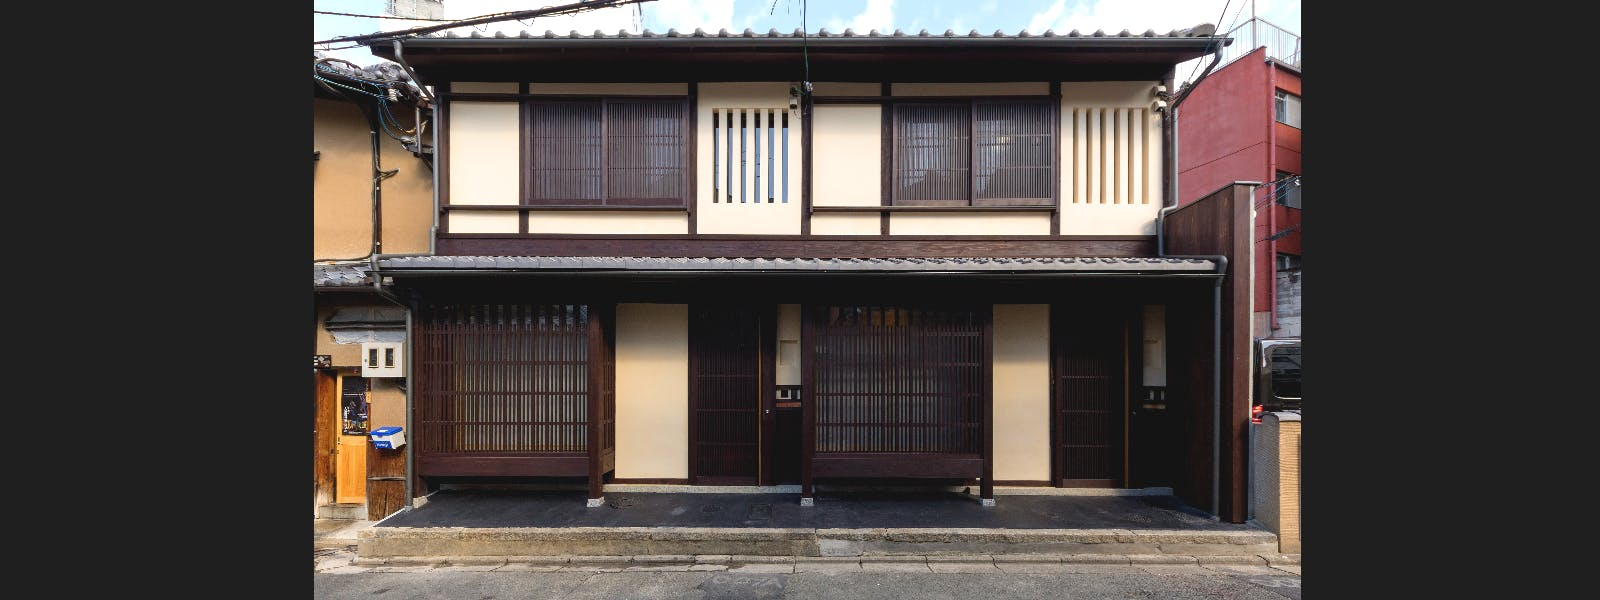 BenTen Residences - Kyoto Townhouses Restored by Hand